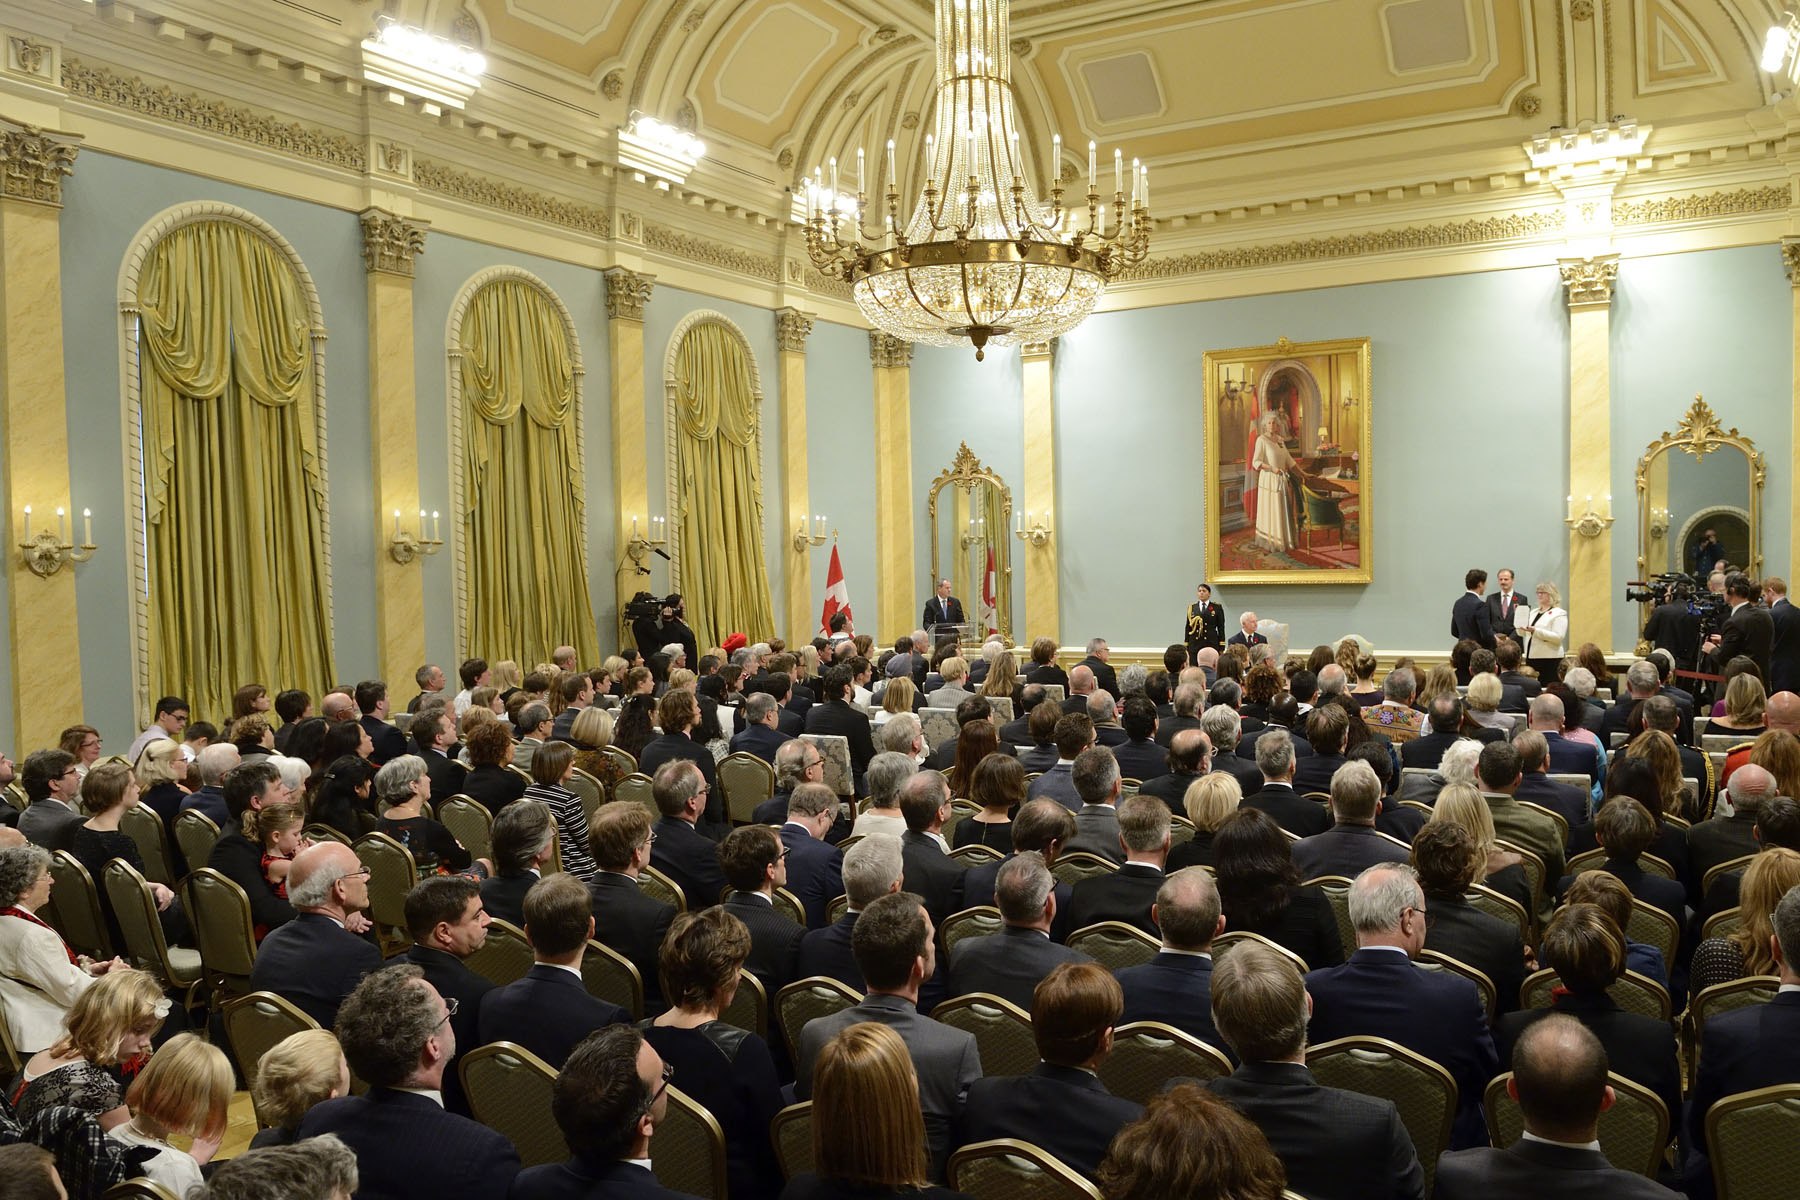 His Excellency presided over the swearing-in ceremony of Canada's 23rd prime minister and members of his new Cabinet.